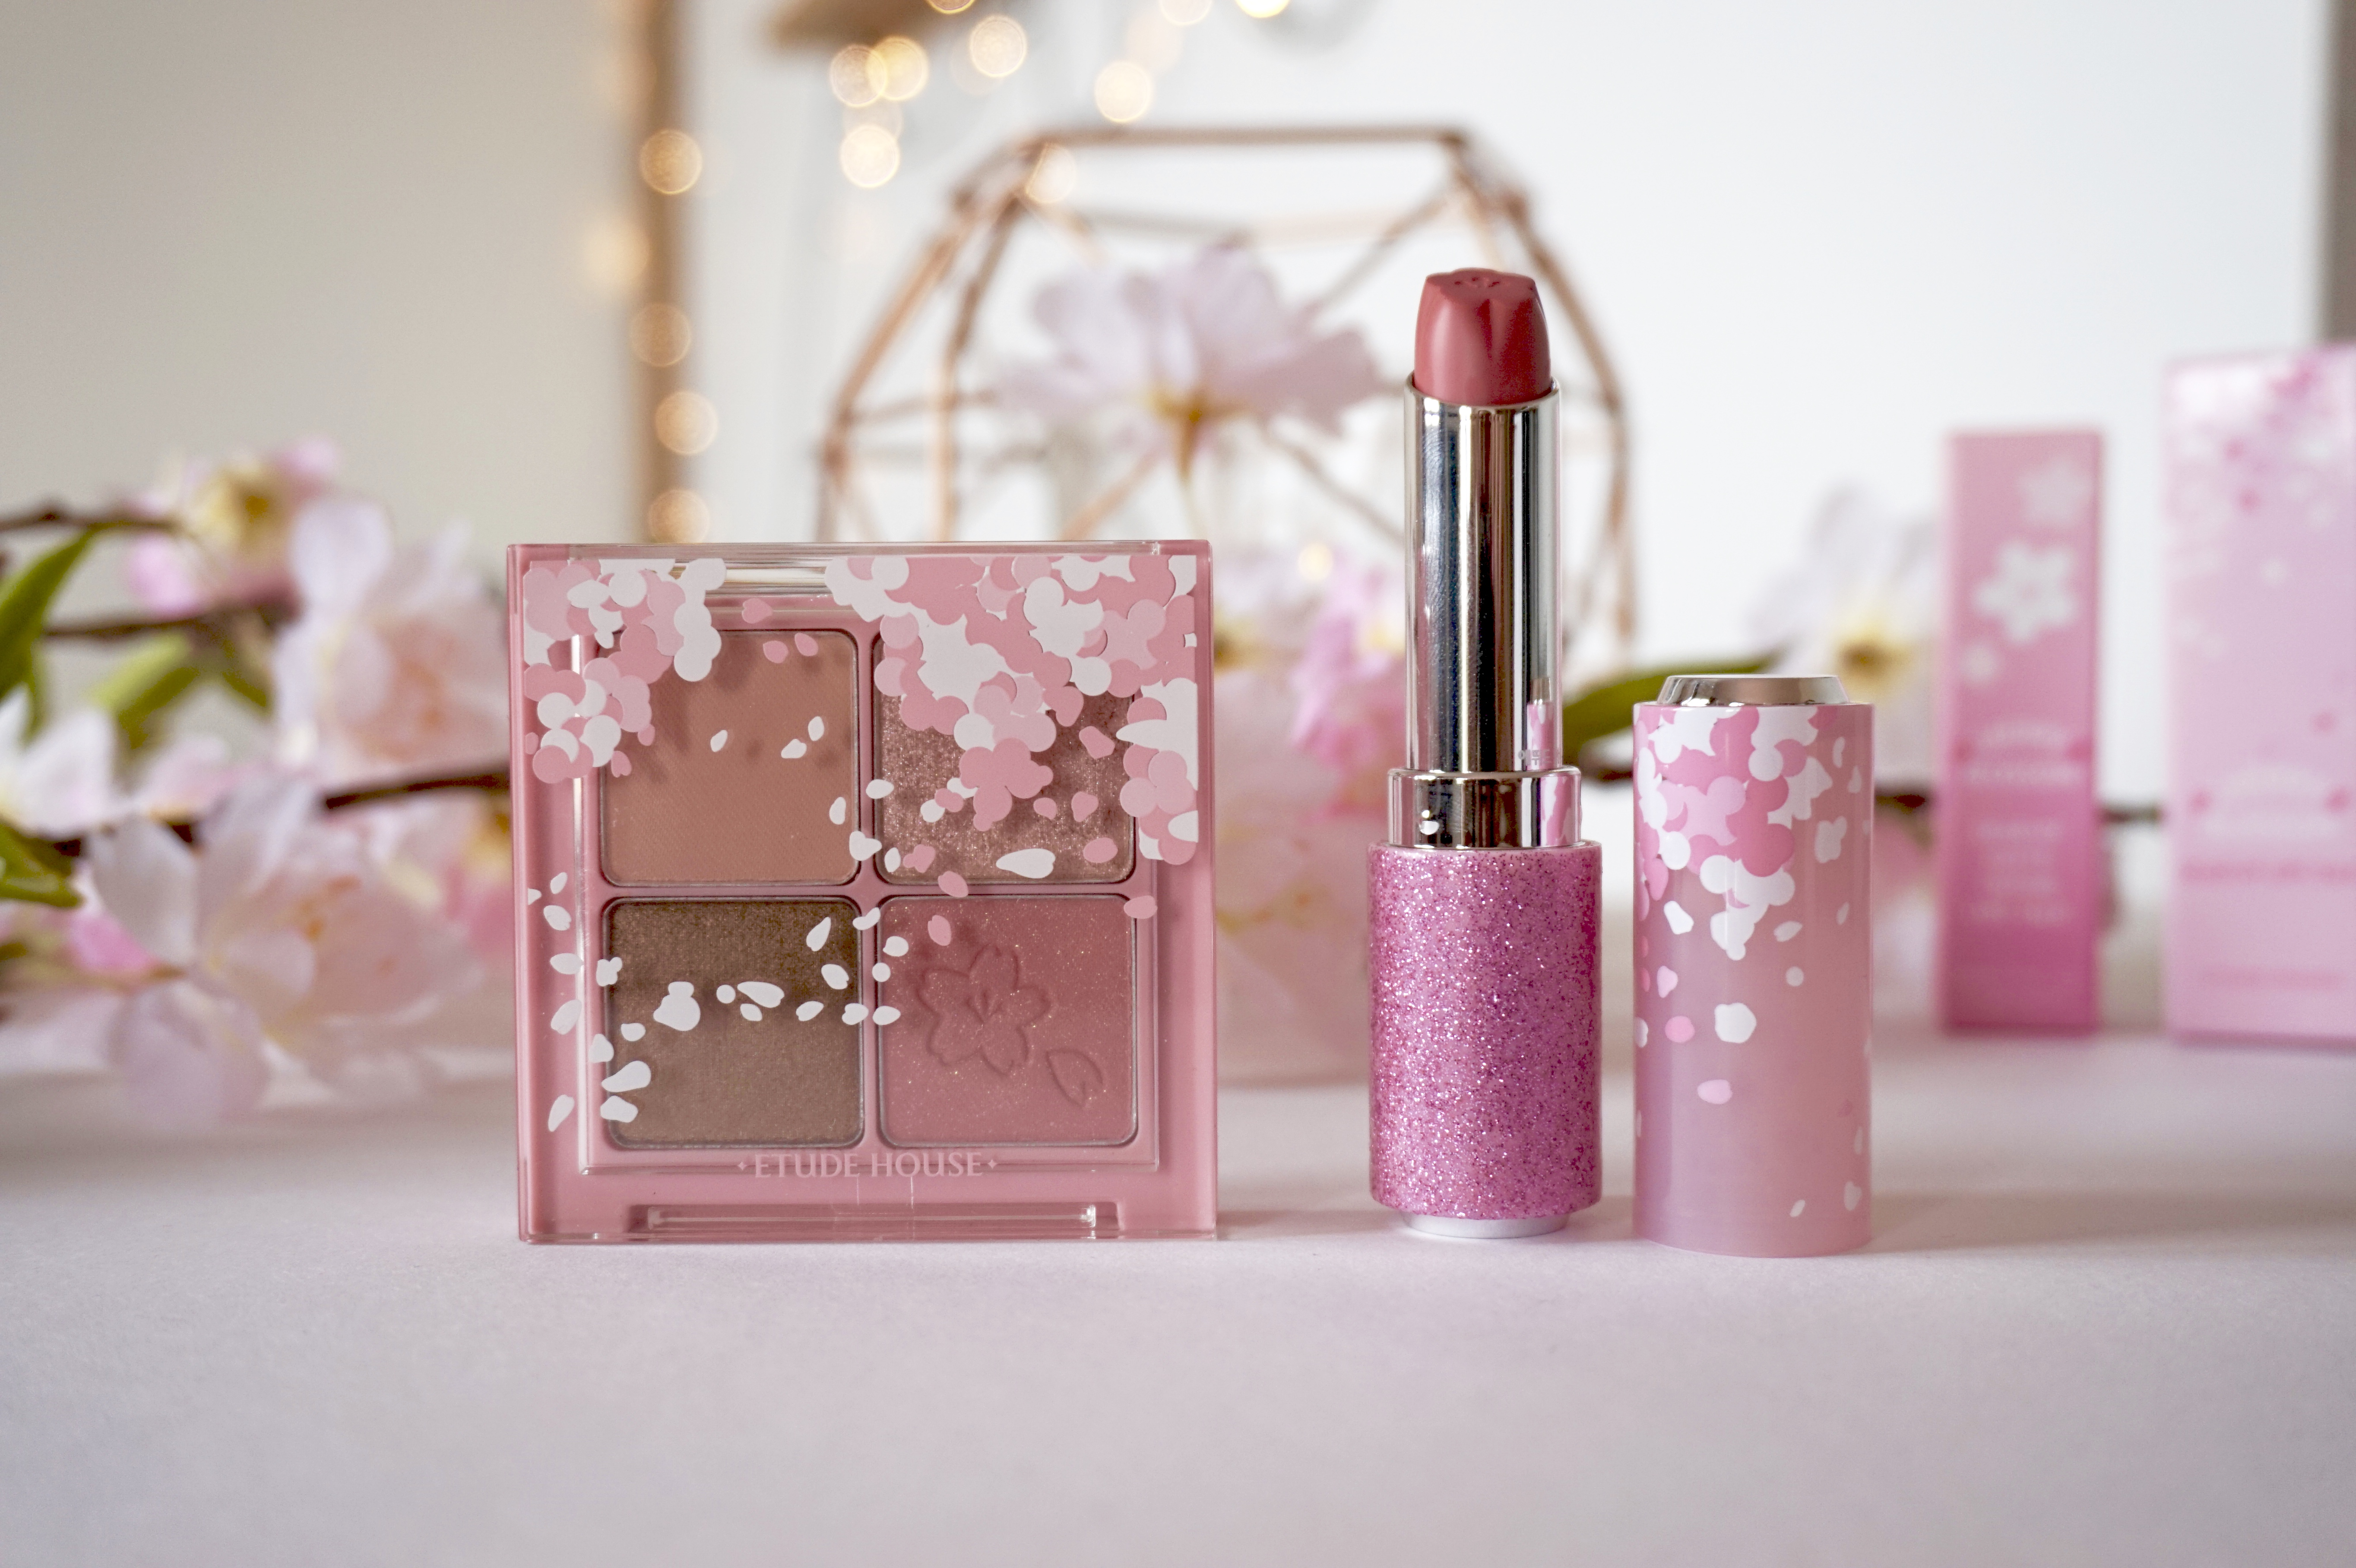 Revue Collection Etude House Cherry Blossom !